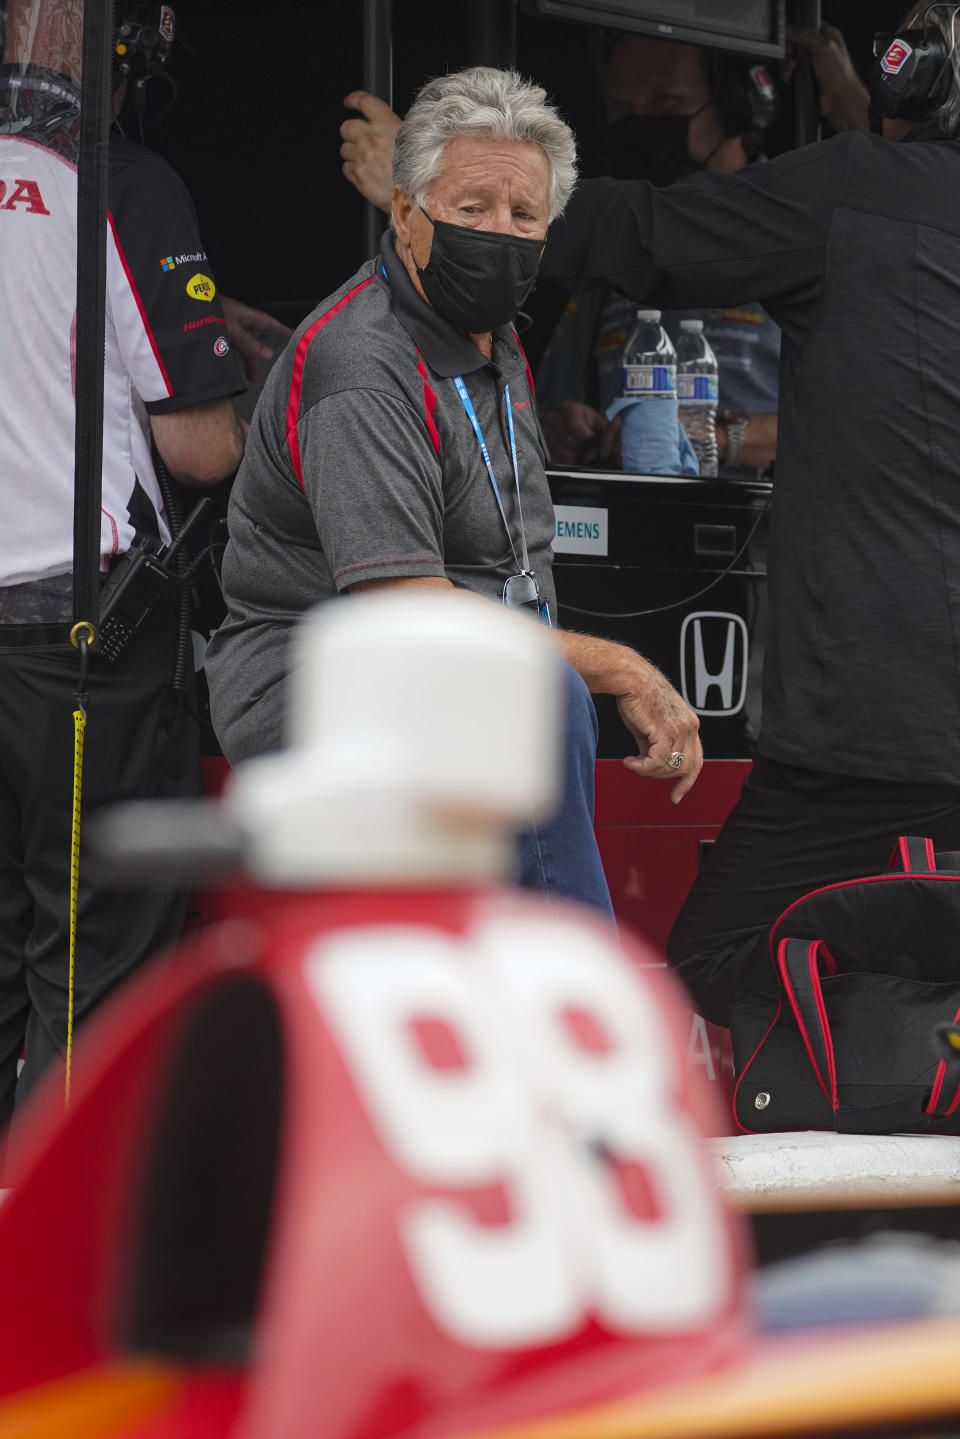 Mario Andretti watches as his grandson Marco Andretti practices for the Indianapolis 500 auto race at Indianapolis Motor Speedway in Indianapolis, Tuesday, May 18, 2021. (AP Photo/Michael Conroy)